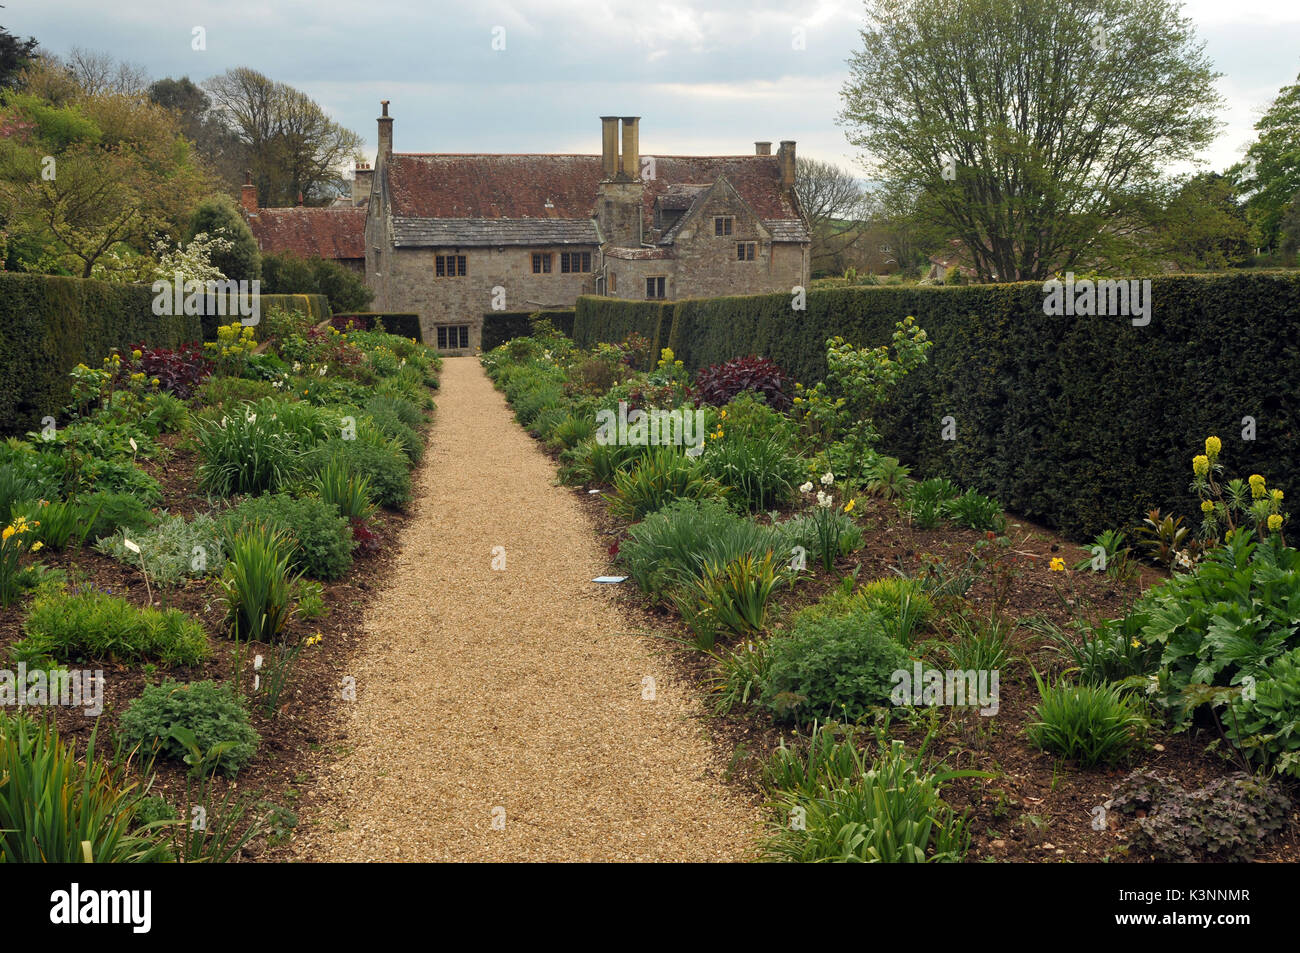 Mottistone Manor House on the Isle of Wight showing the formal gardens an stone steps with walls and symmetrical planting landscaped gardens - Stock Image